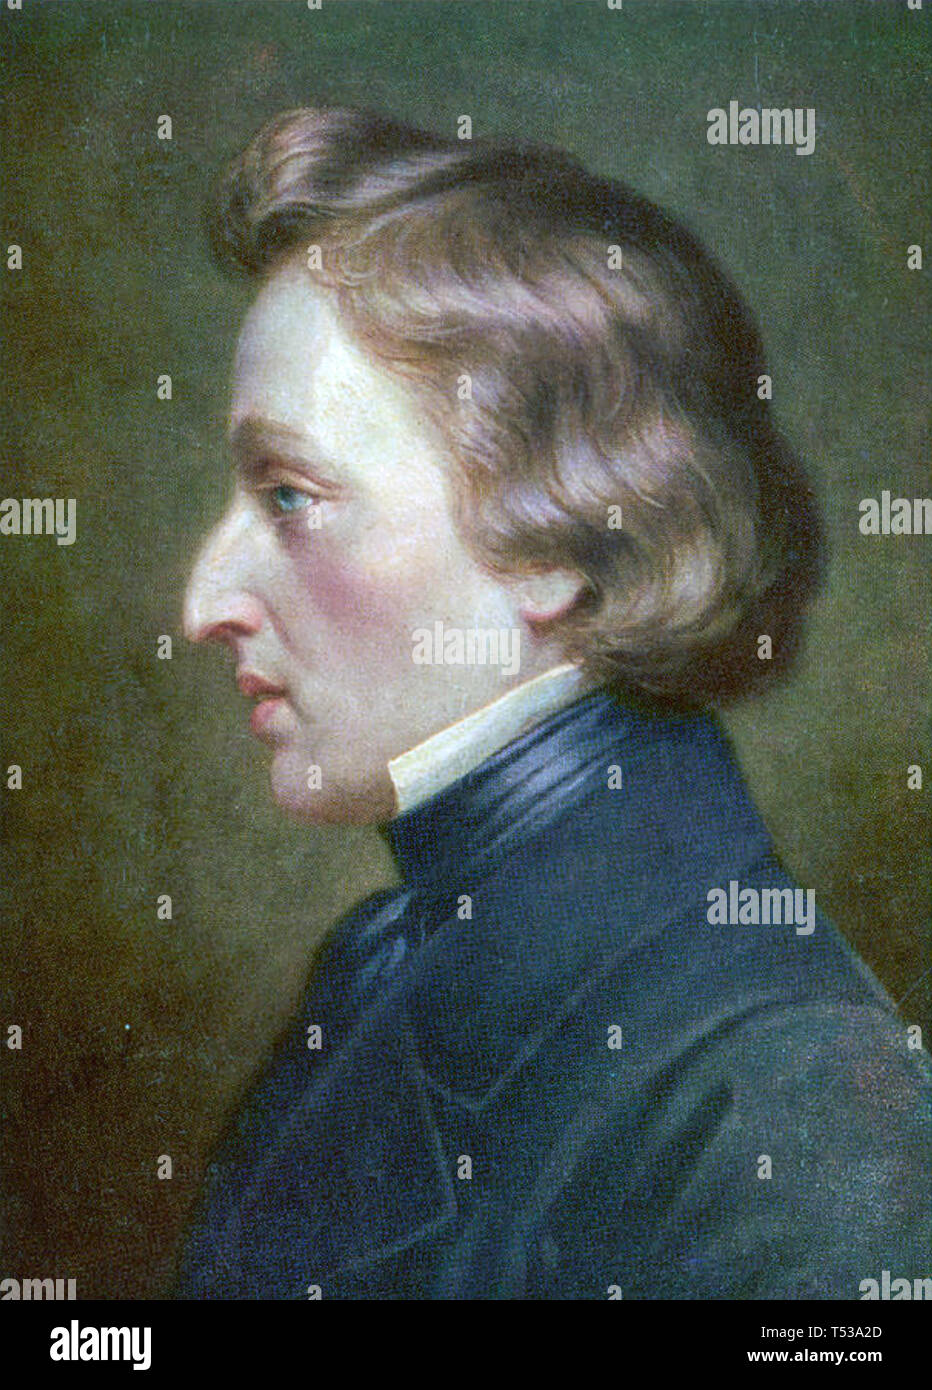 FRÉDÉRIC CHOPIN (1810-1849) Polish Romantic composer about 1850 - Stock Image